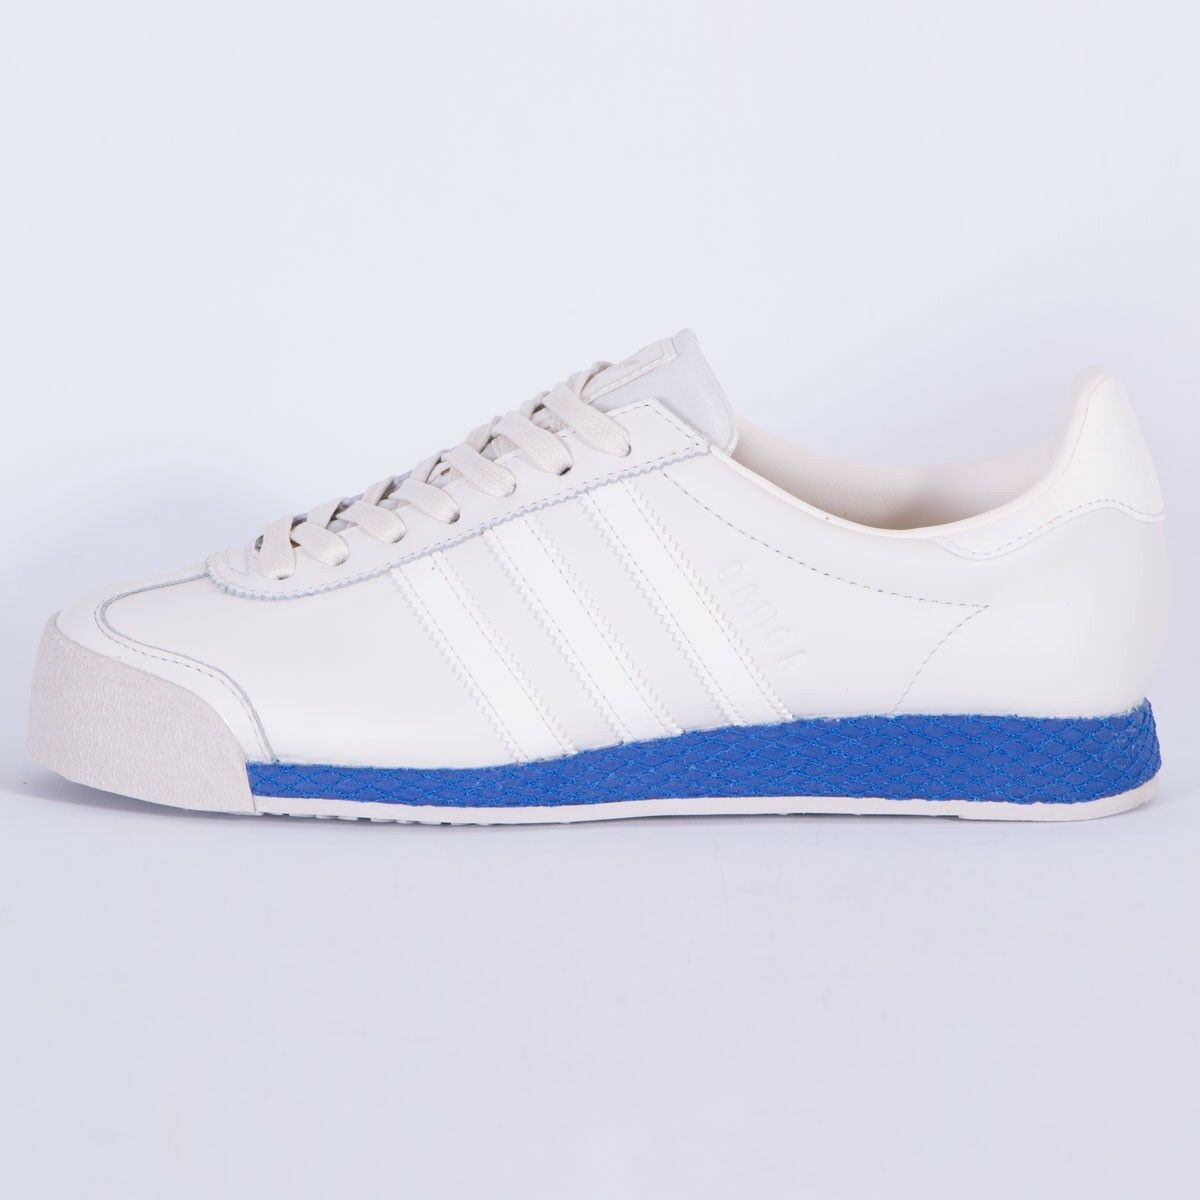 ADIDAS ORIGINALS SAMOA Vintage Uomo Donna Junior Boys sneaker Bianco